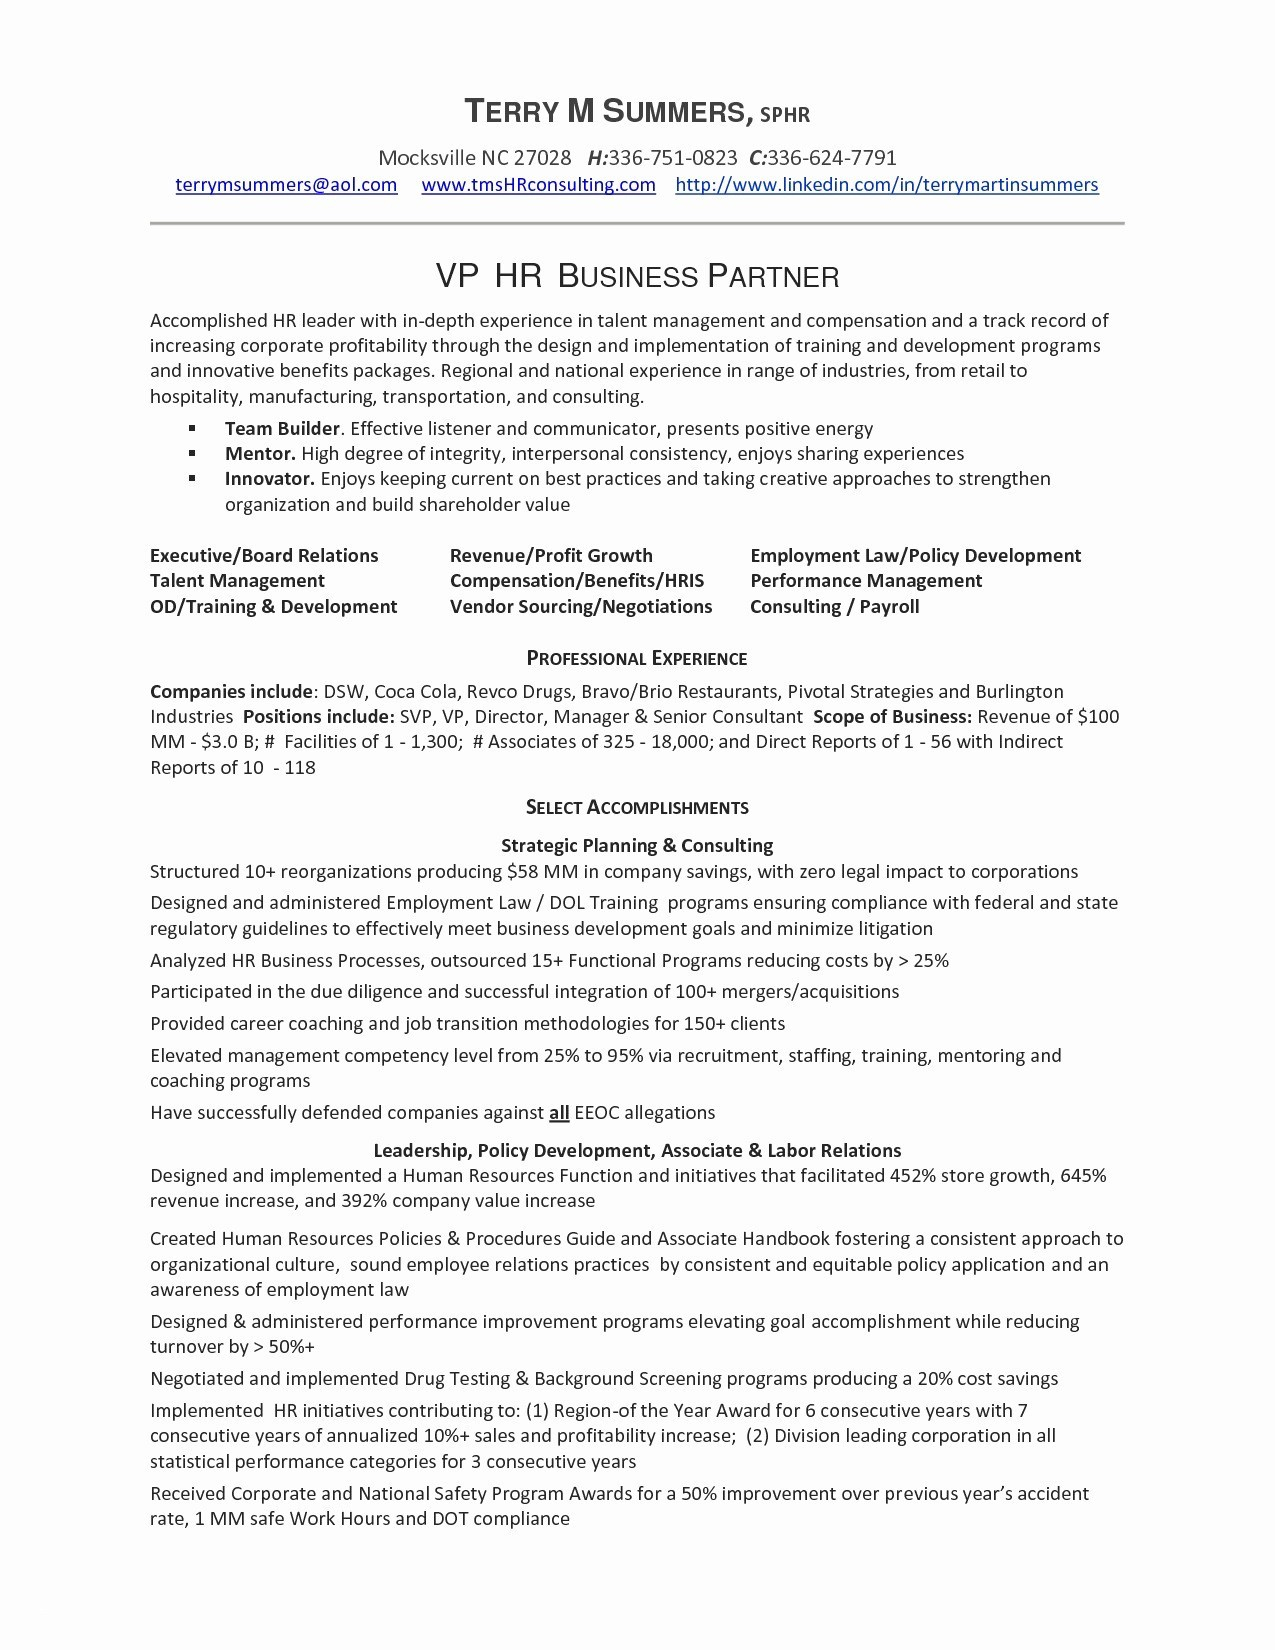 Business Analyst Resume Examples - Program Analyst Resume Beautiful New Program Manager Resume Examples